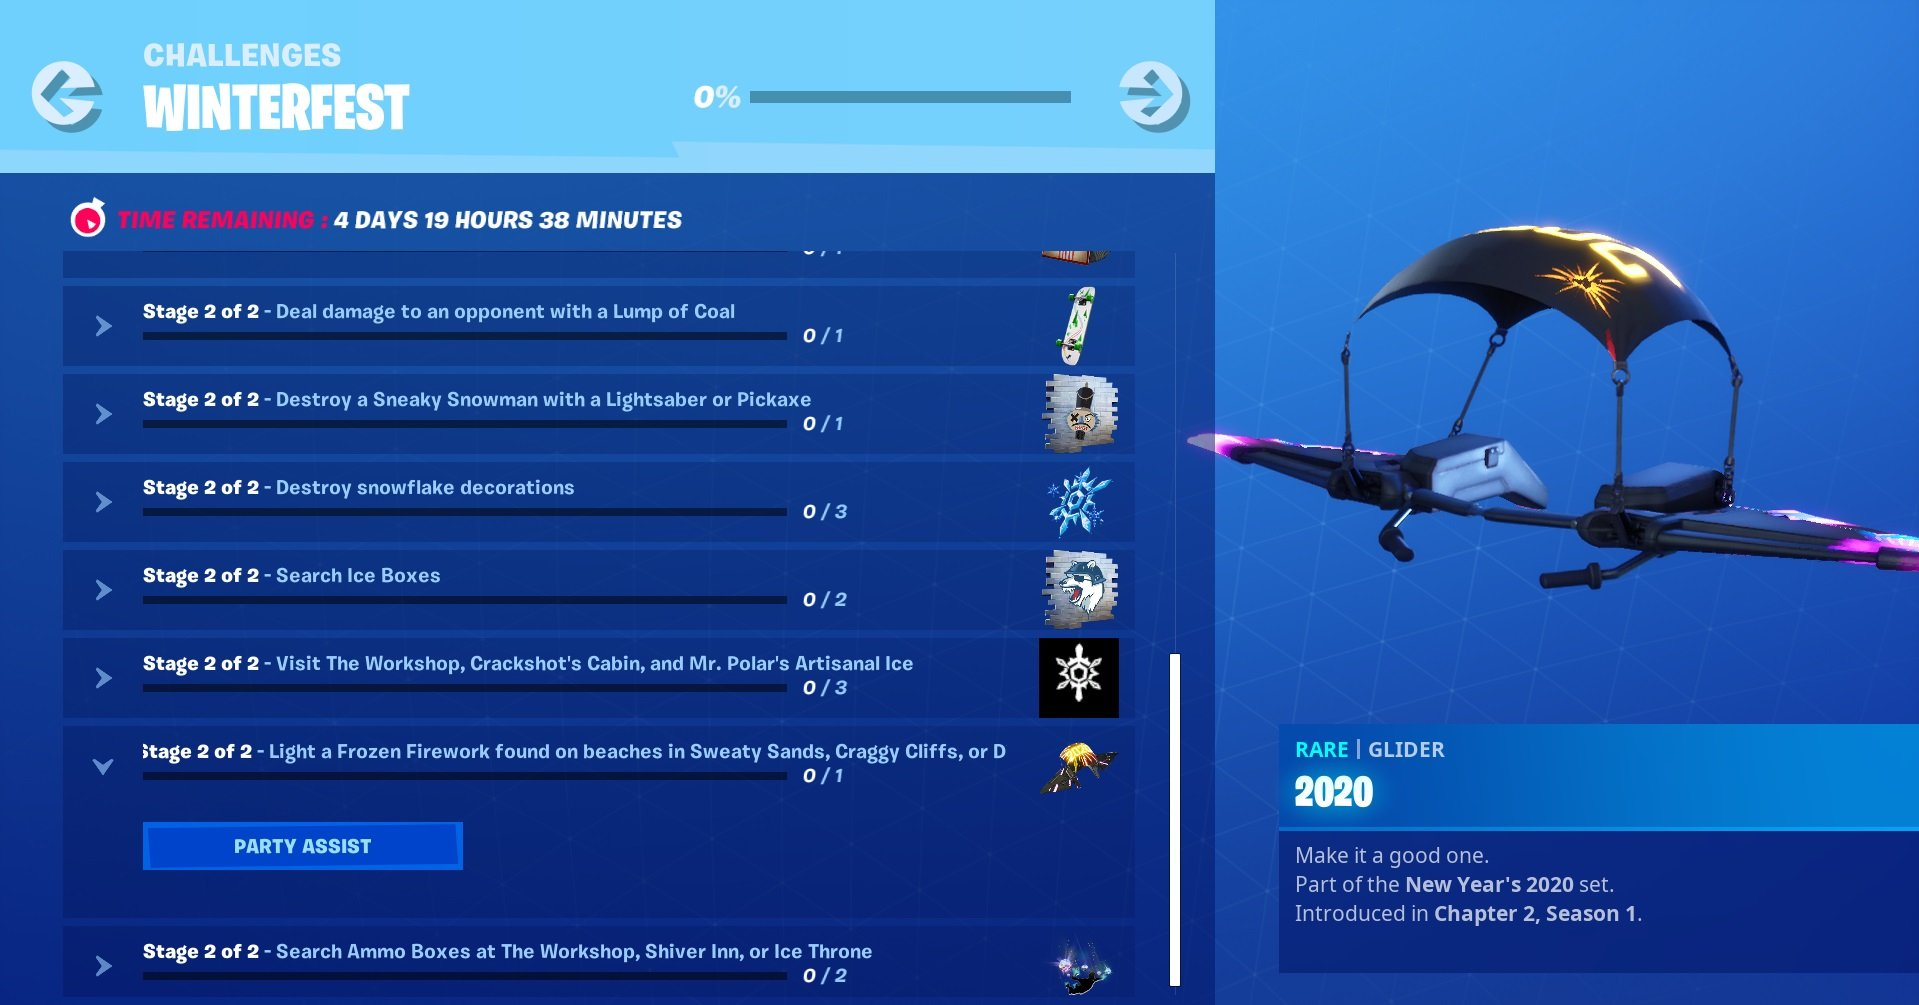 Complete the Frozen Fireworks challenge to unlock the 2020 Glider in Fortnite.